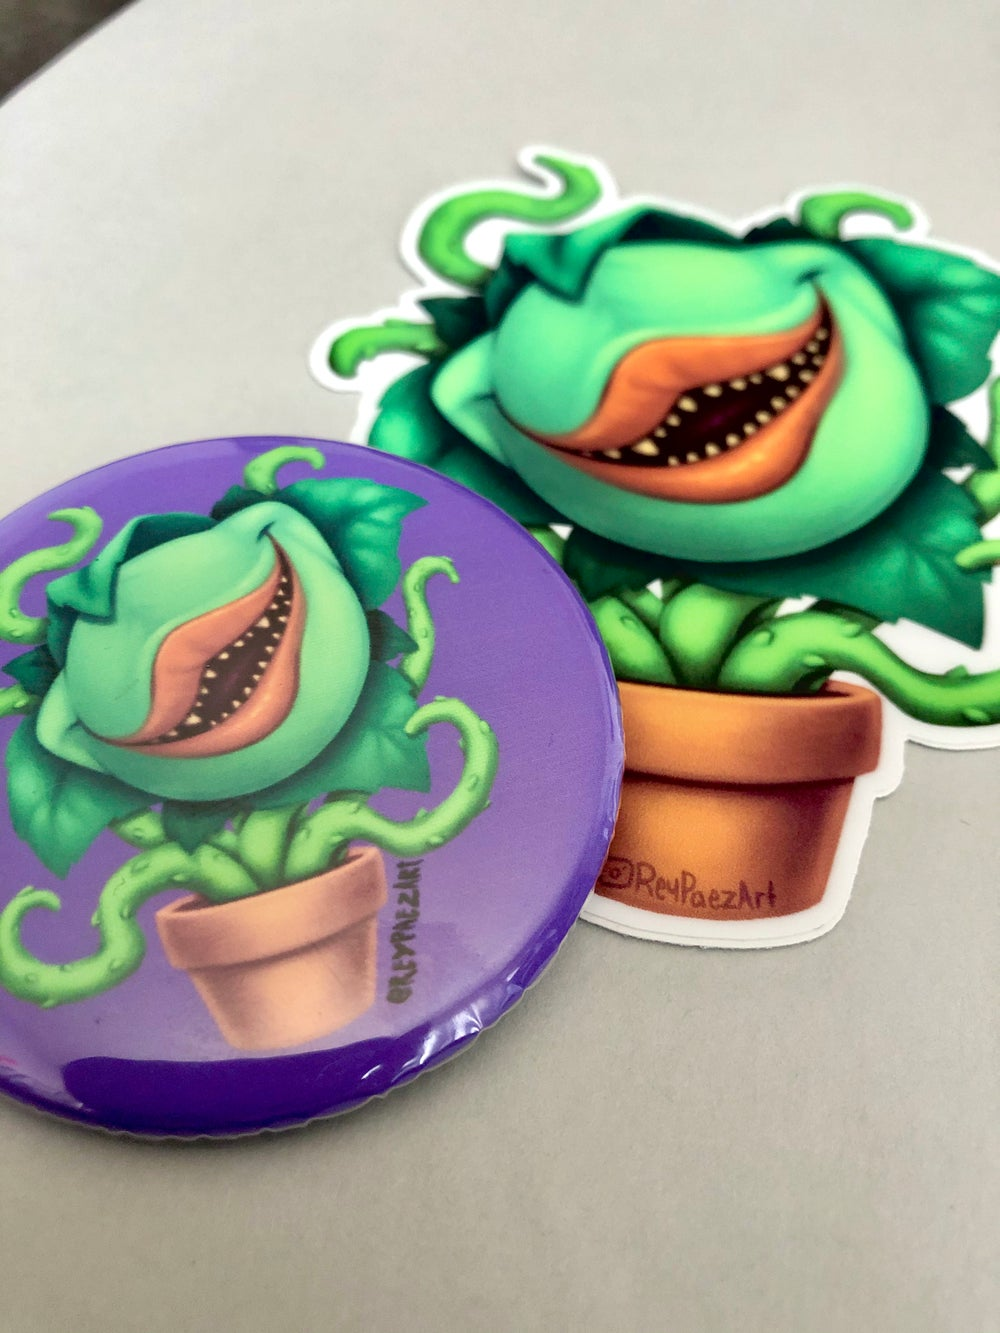 Feed me (button and sticker)